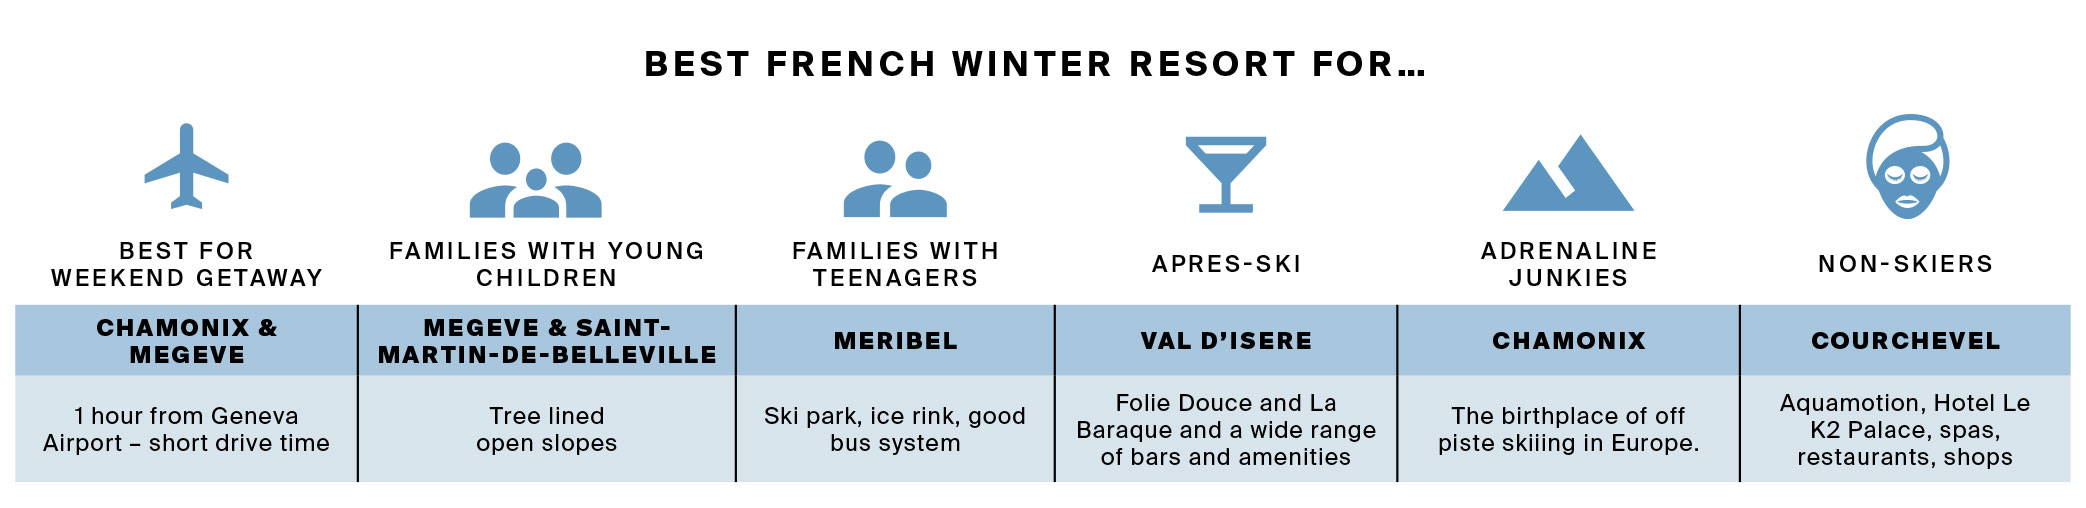 Knight Frank has published its Prime Ski Property Report. A detailed assessment of the luxury alpine real estate market in the French and Swiss Alps for 2020.